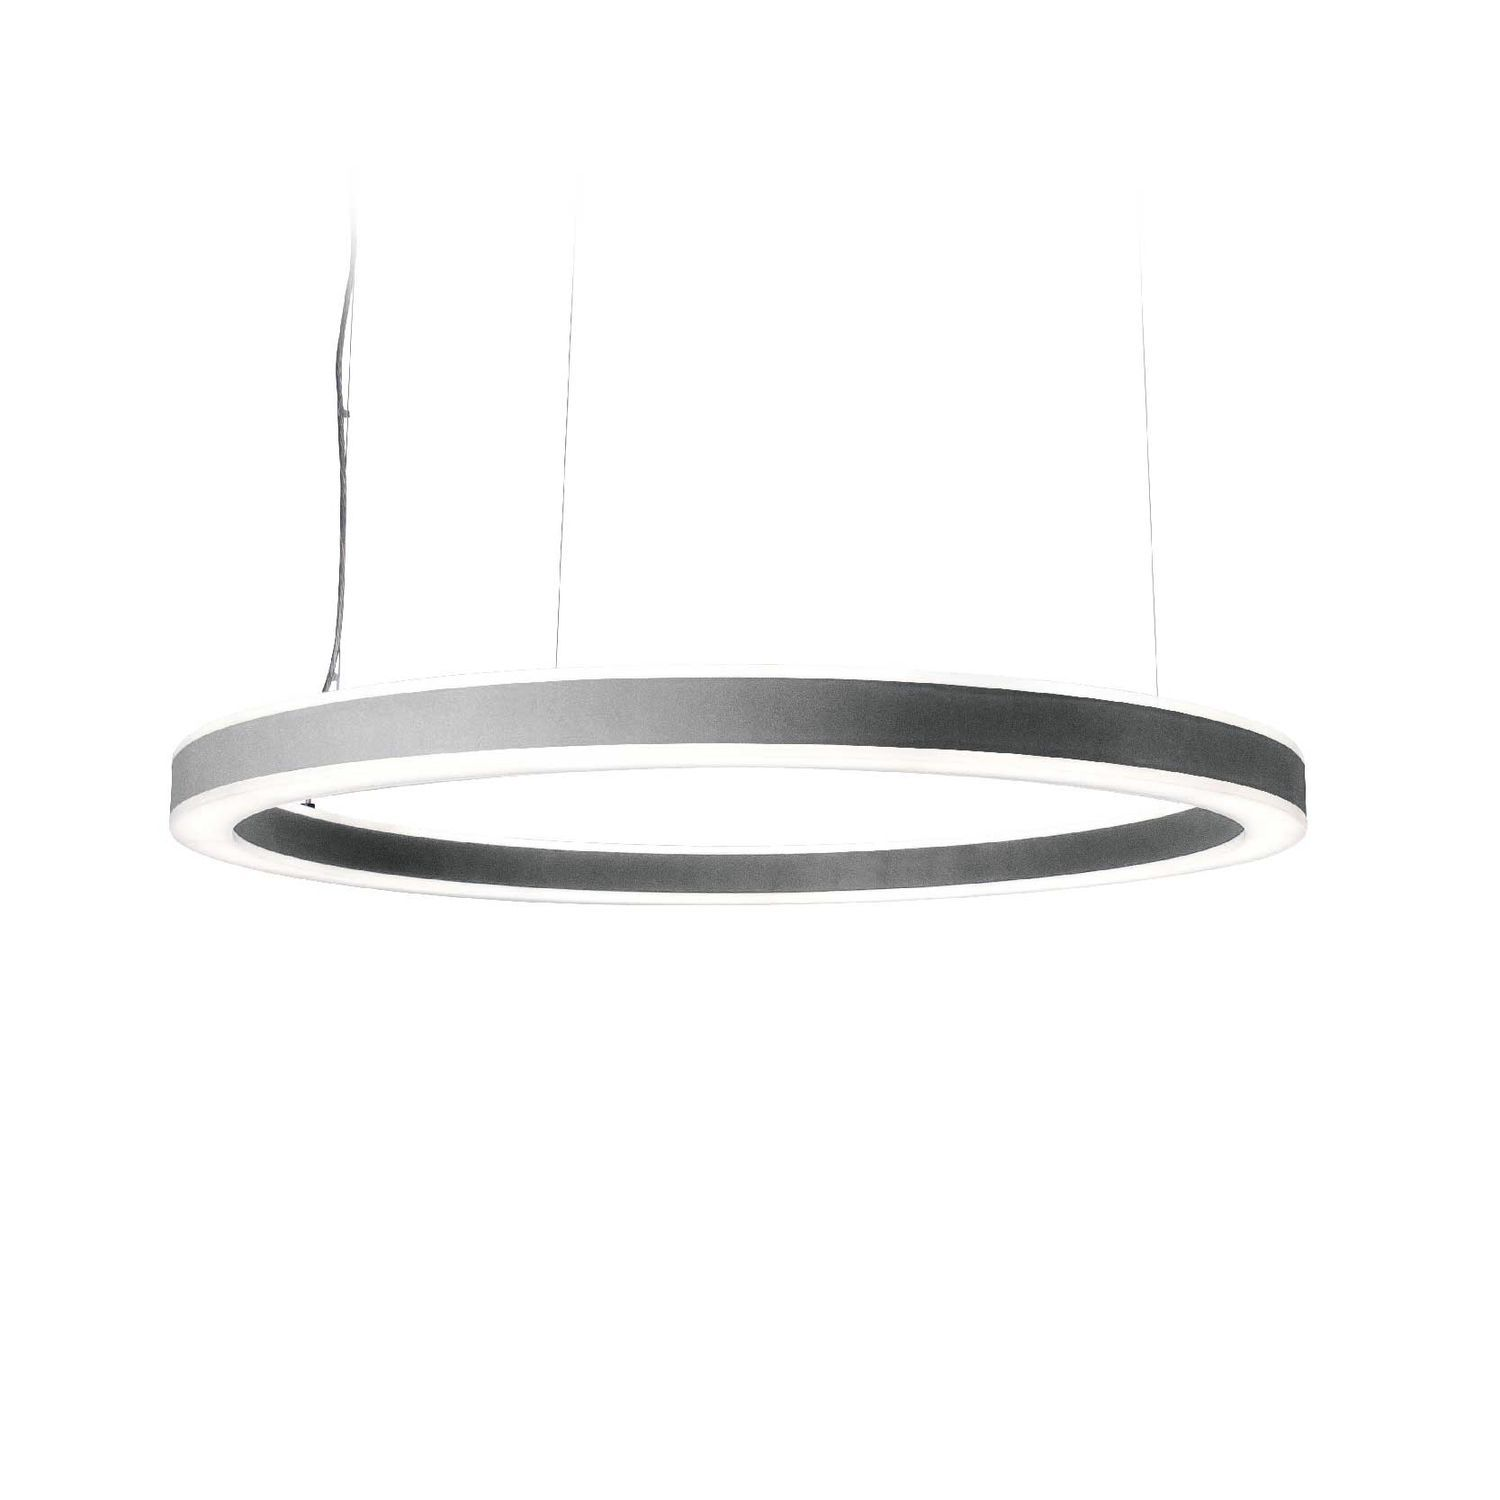 Hanging light fixture led round aluminum halo planlicht hanging light fixture led round aluminum arubaitofo Image collections